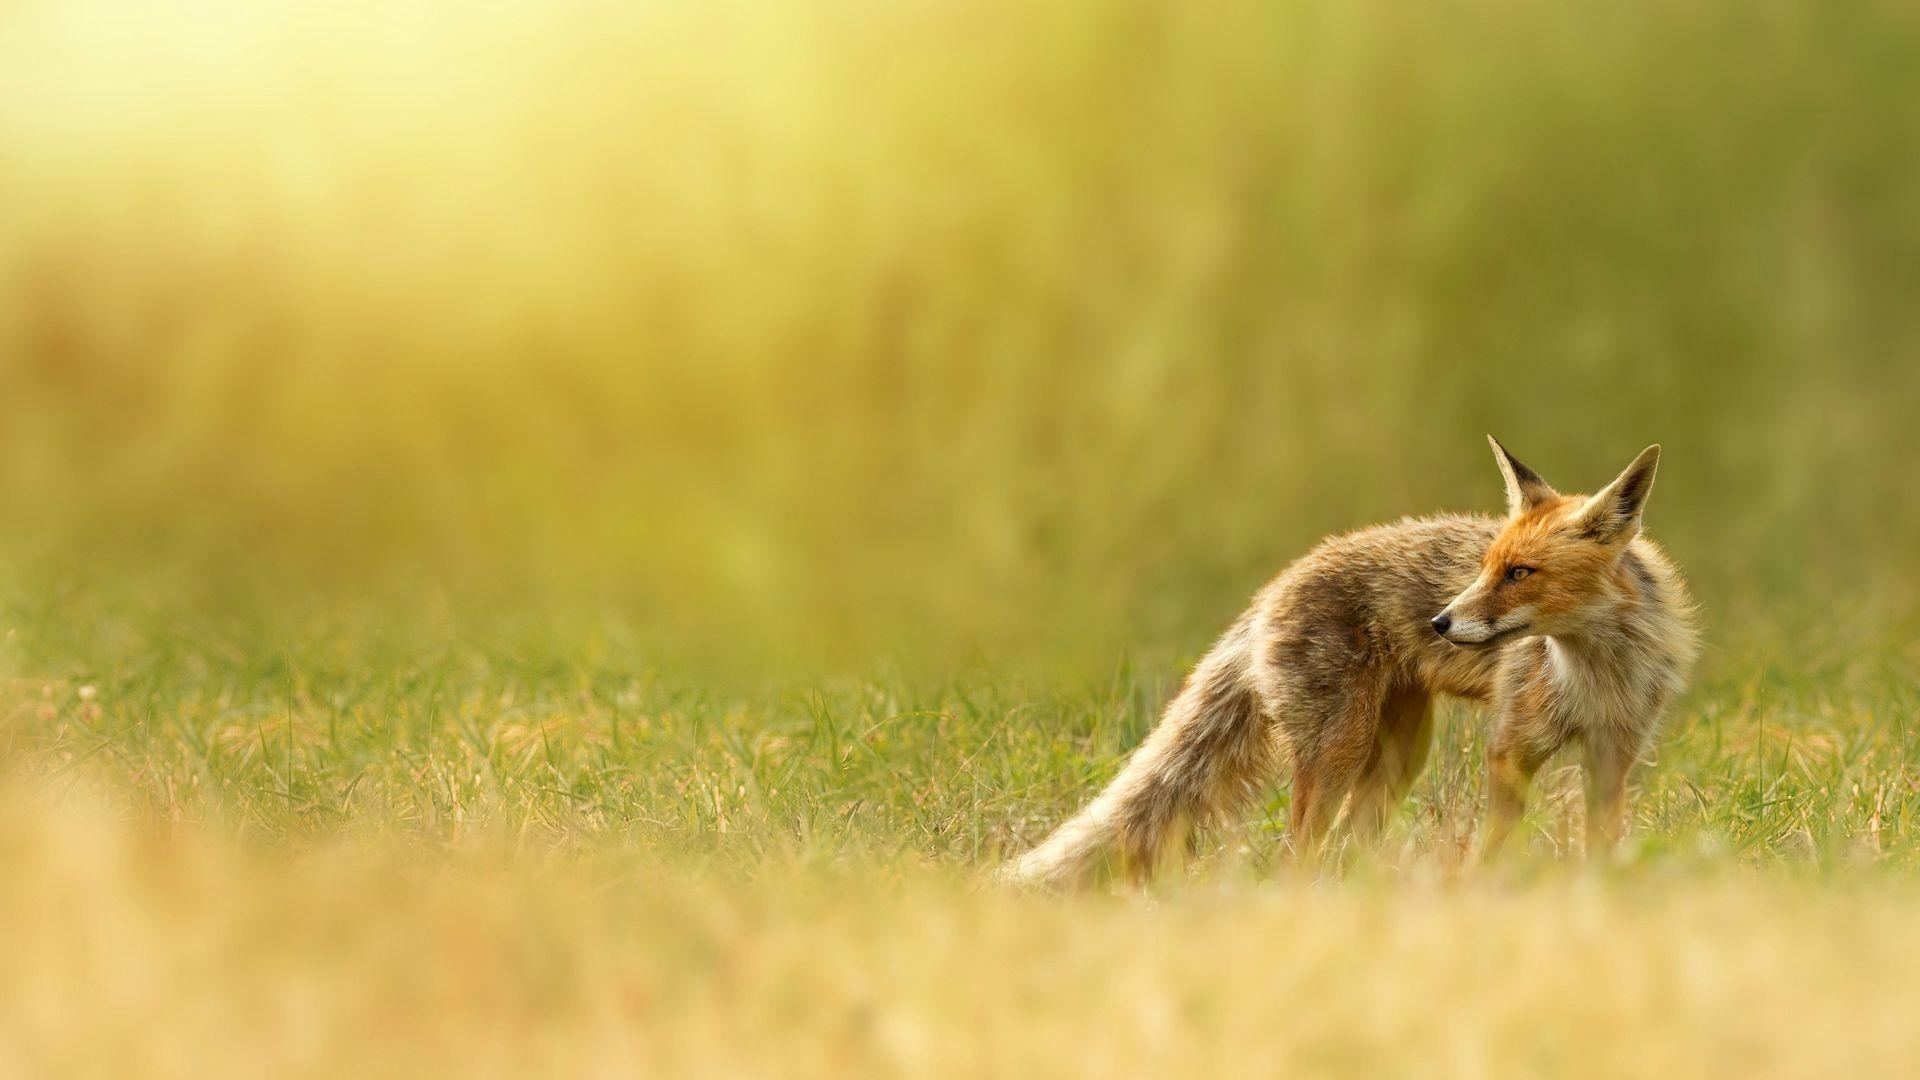 fox wallpapers, red fox, red, nature, grass